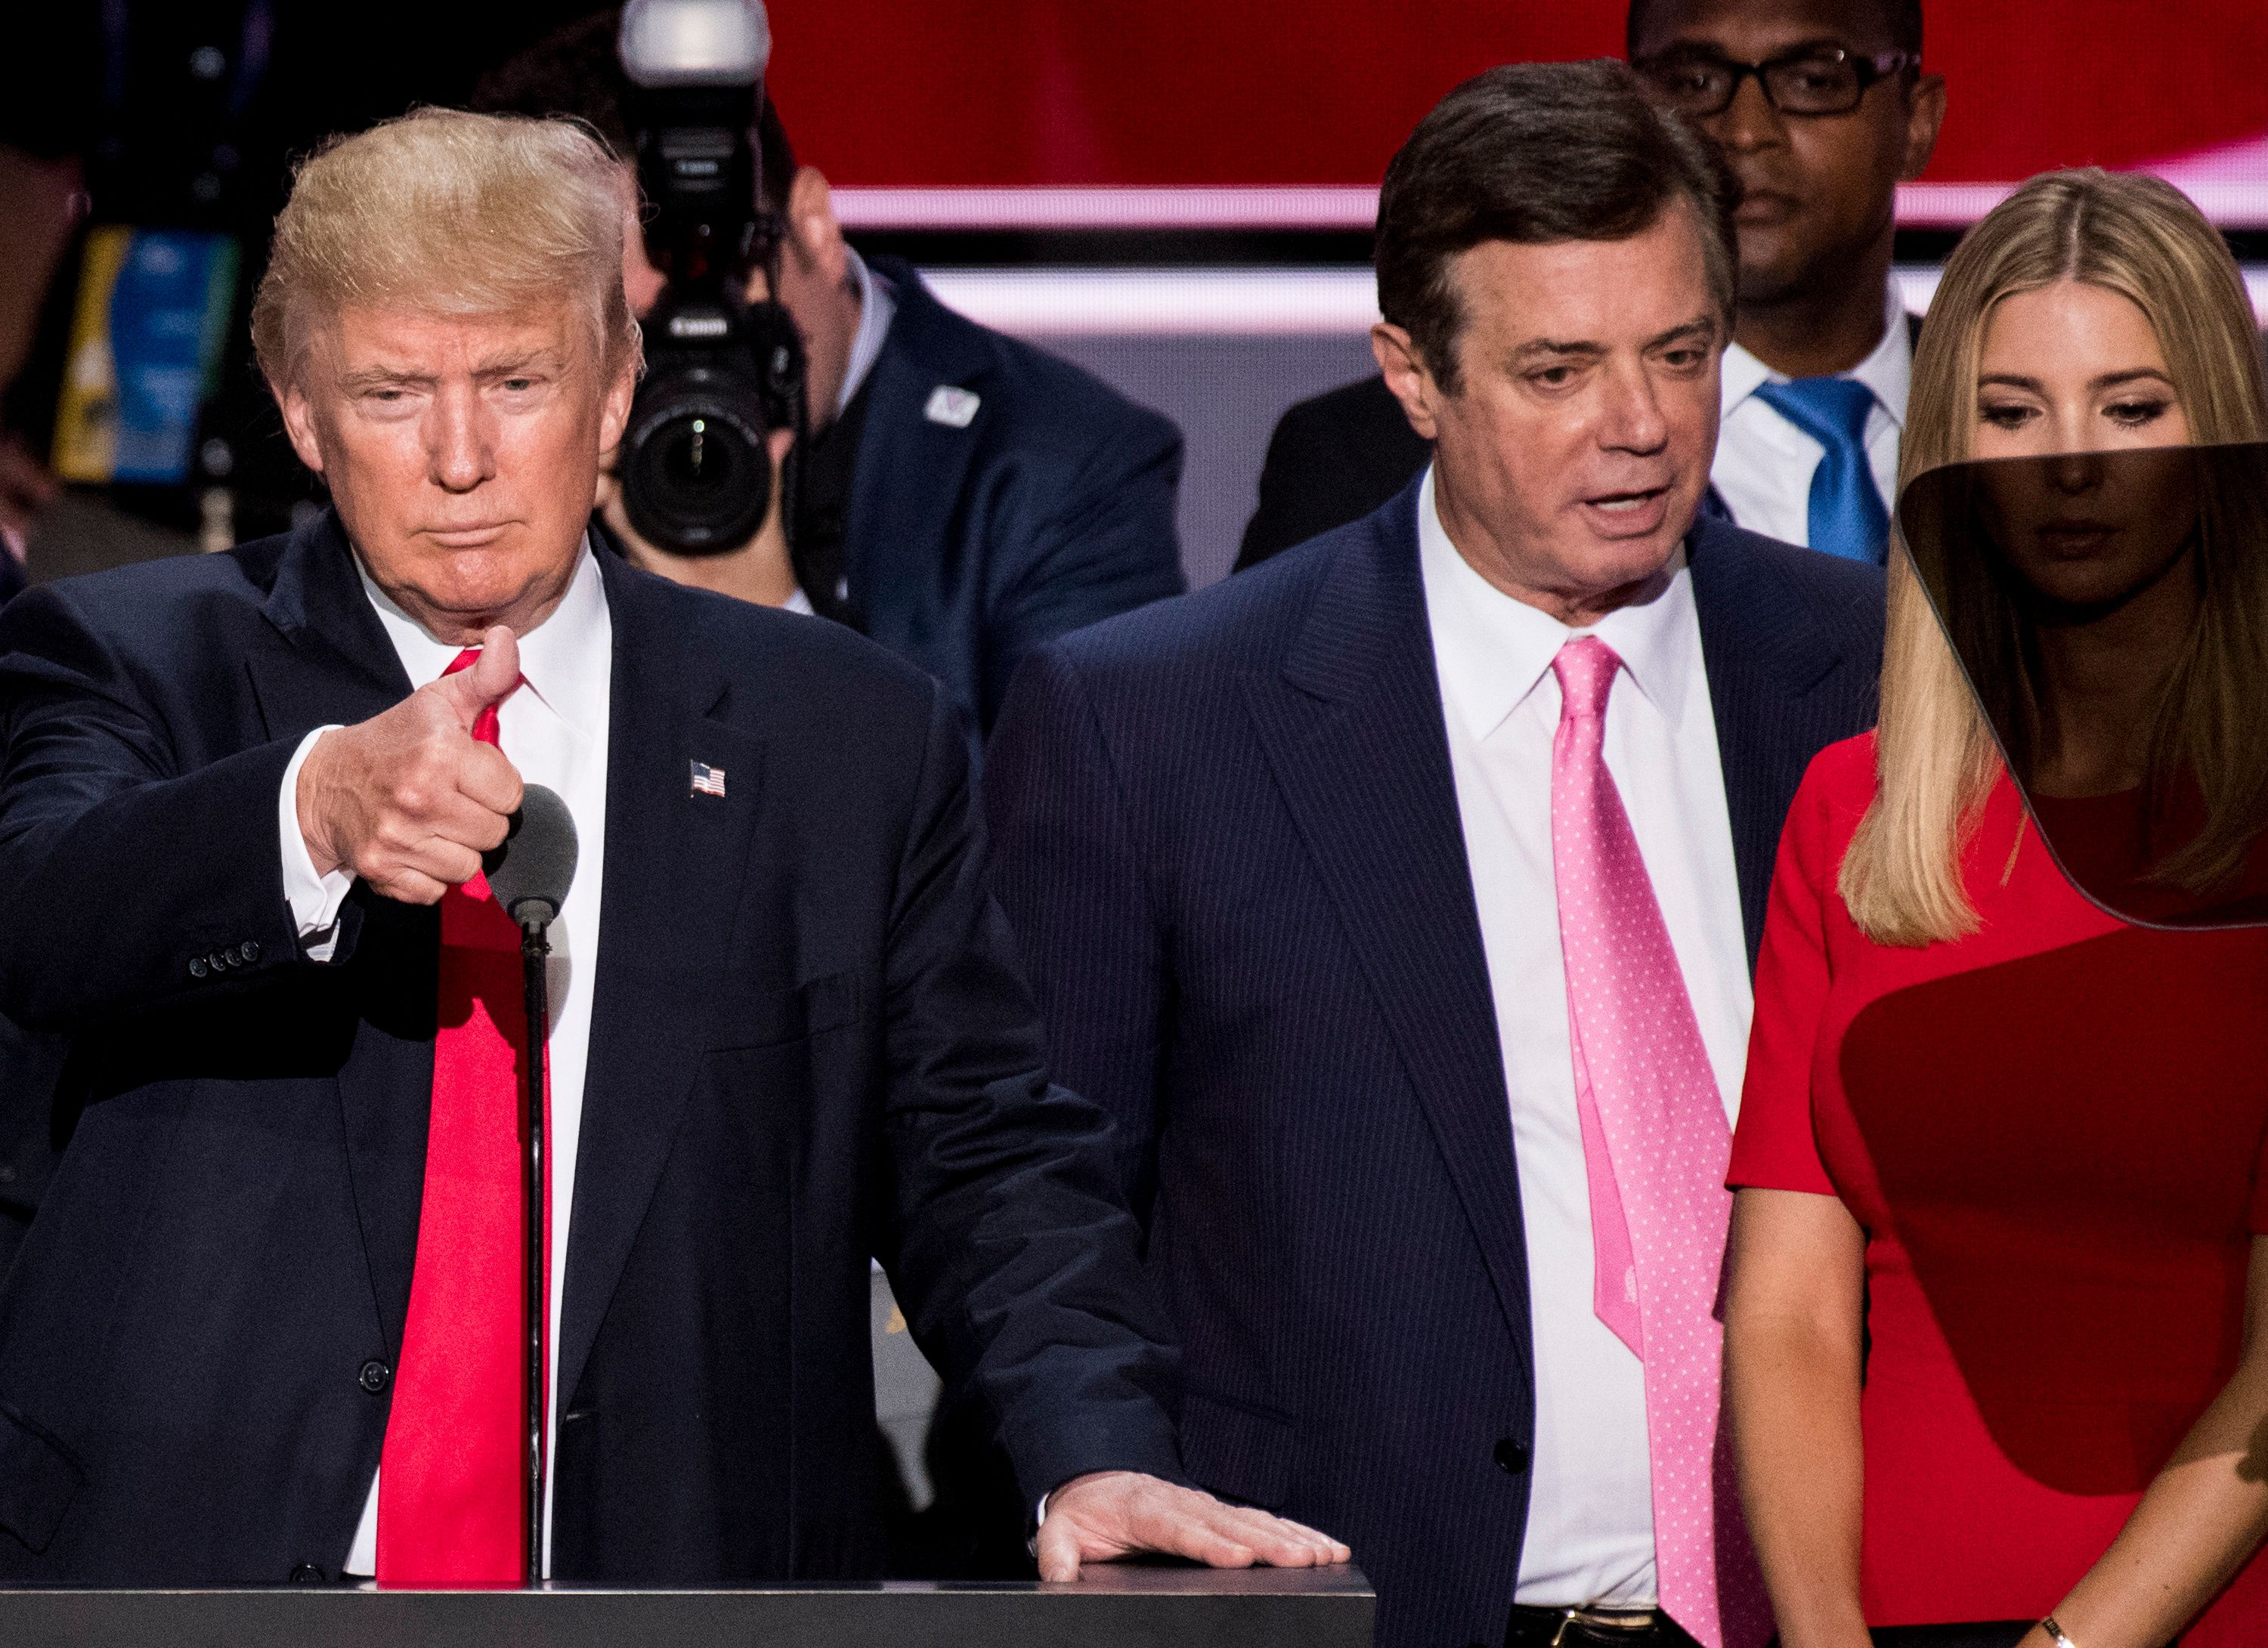 UNITED STATES - NOVEMBER 27: GOP nominee Donald Trump, flanked from left by campaign manager Paul Manafort, and daughter Ivanka Trump, checks the podium early Thursday afternoon in preparation for accepting the GOP nomination to be President at the 2016 Republican National Convention in Cleveland, Ohio on Thursday July 21, 2016. (File Photo By Bill Clark/CQ Roll Call)